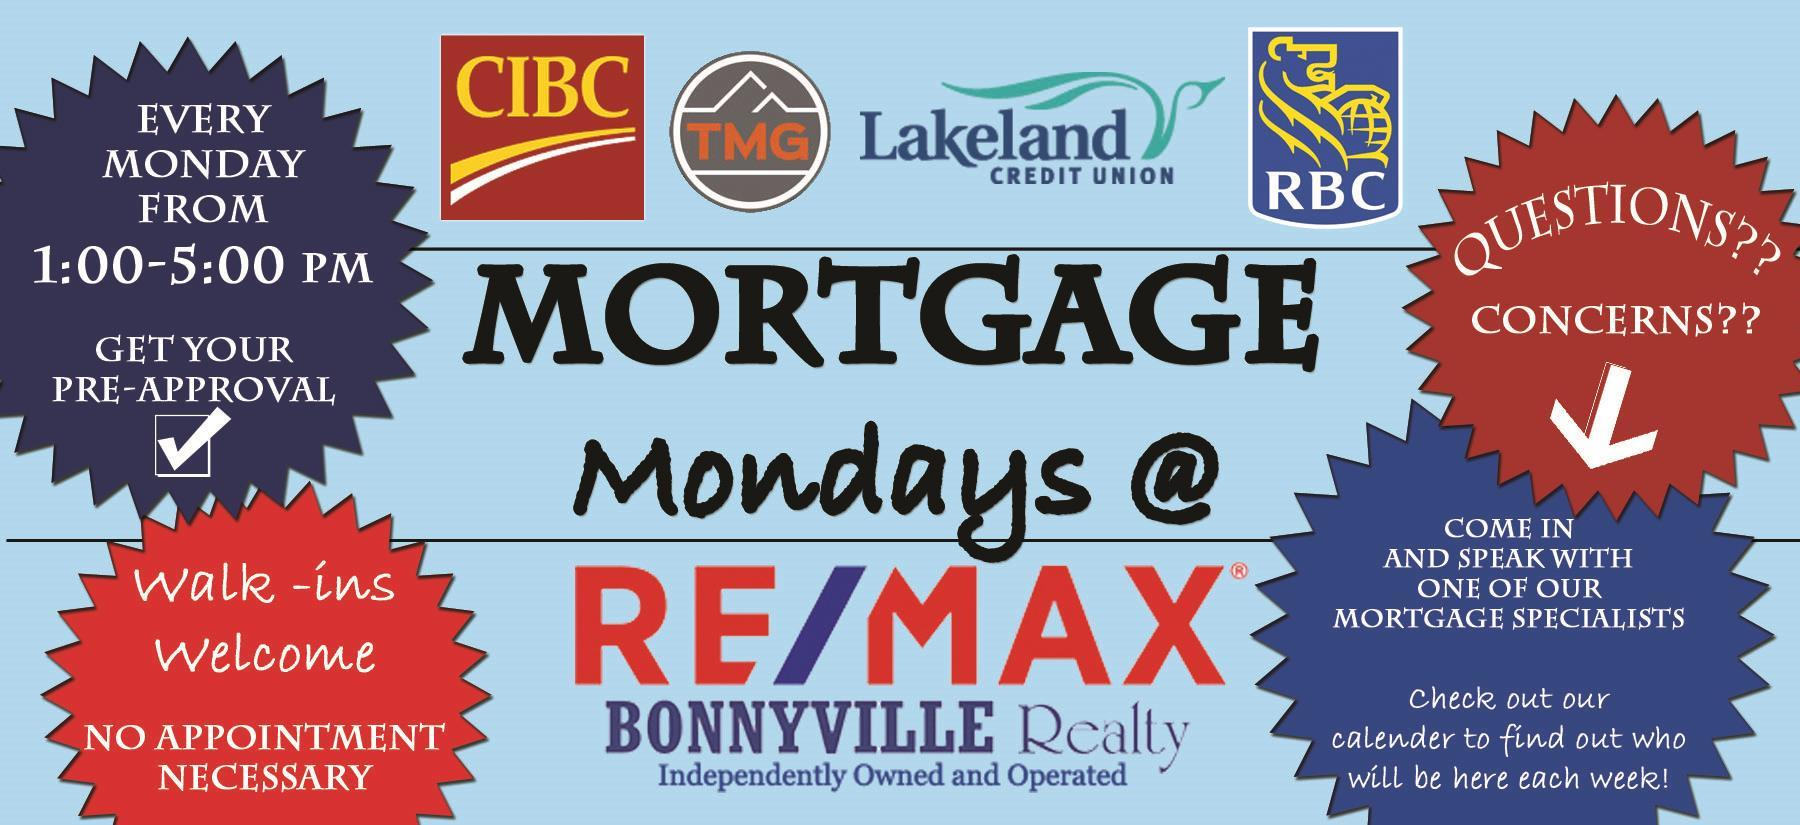 MortgageMondays.jpg